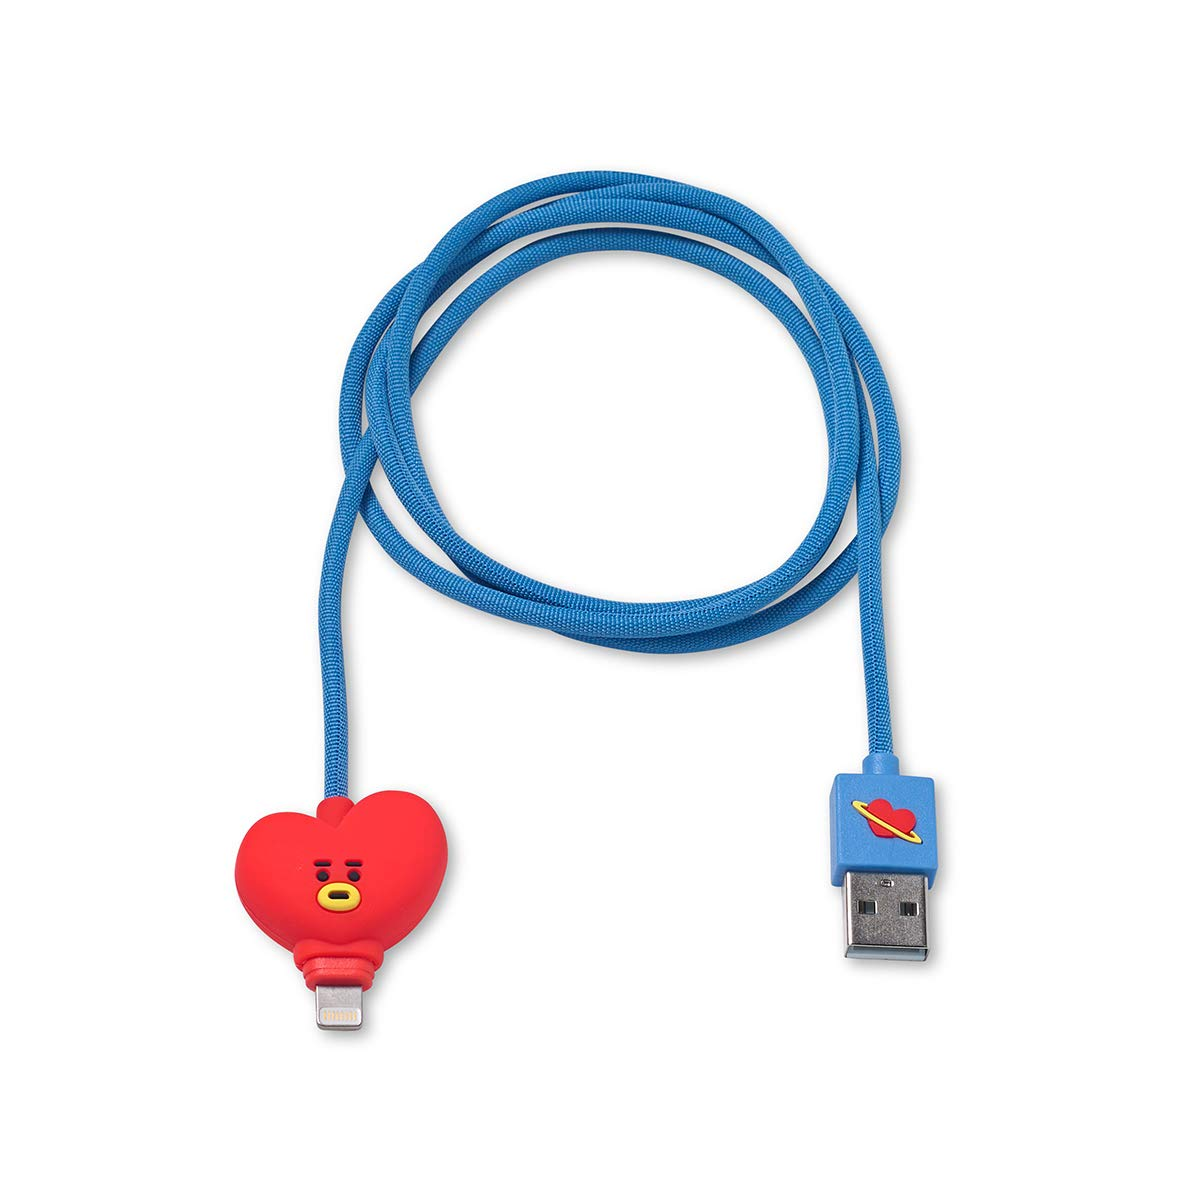 BT21 Official Merchandise by Line Friends - TATA Charger Cable Compatible for iPhone, Red